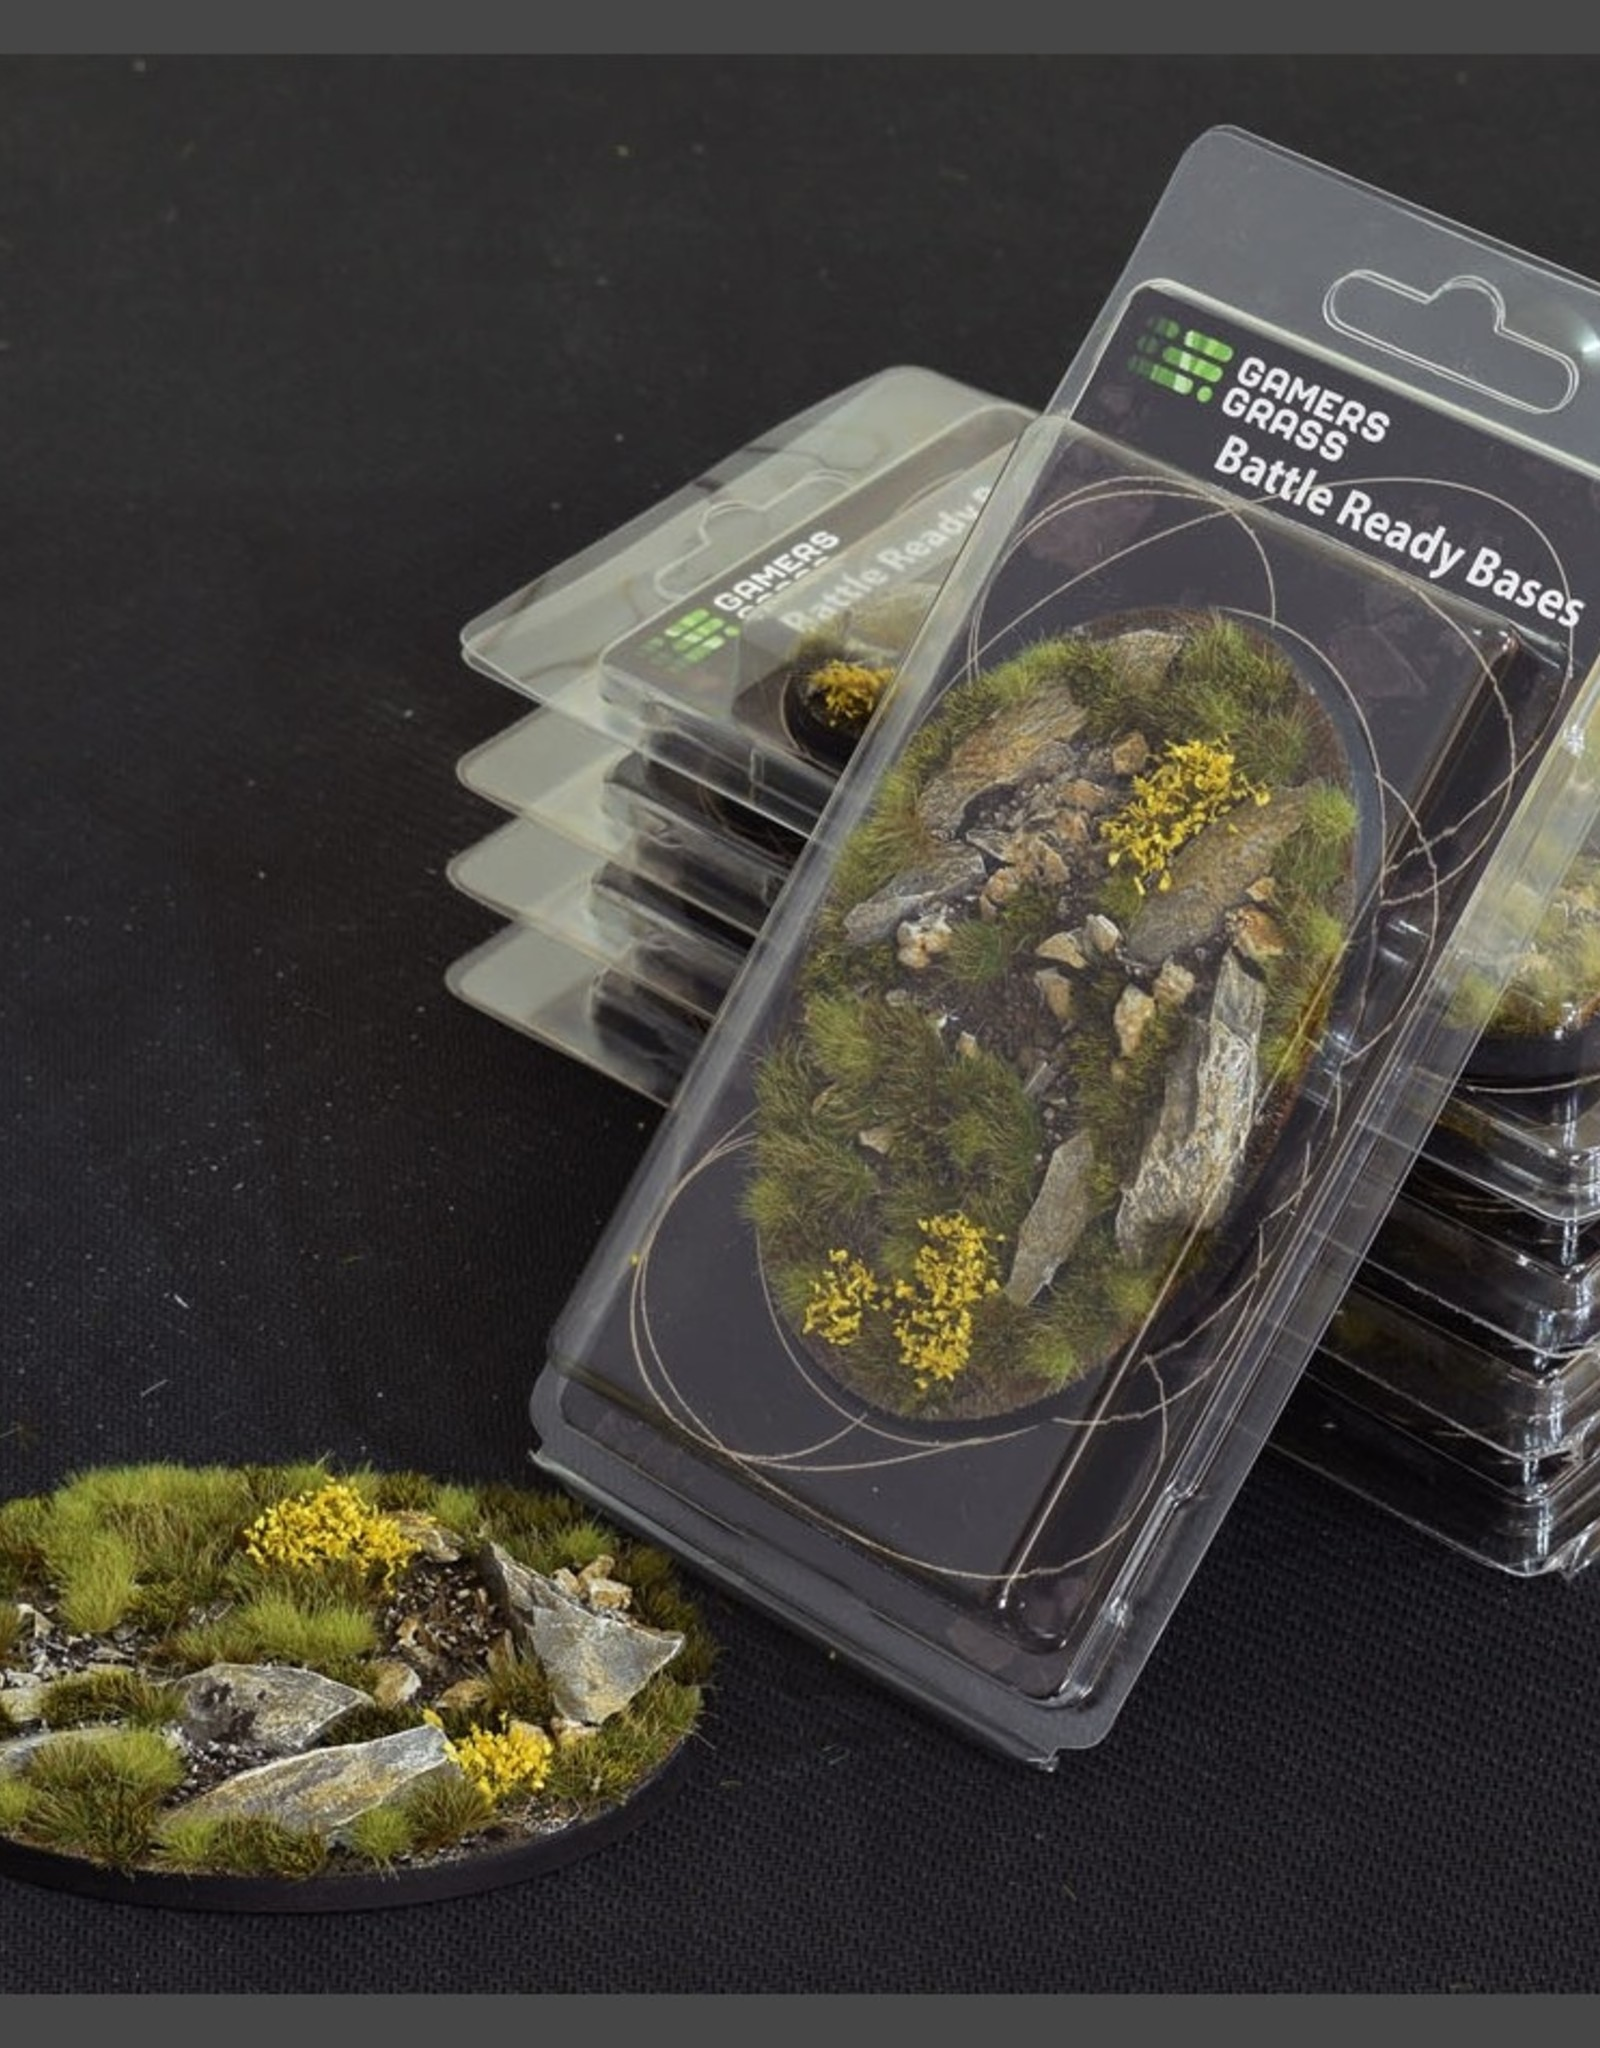 Gamers Grass Highland Bases Pre-Painted (1x 105mm Oval)